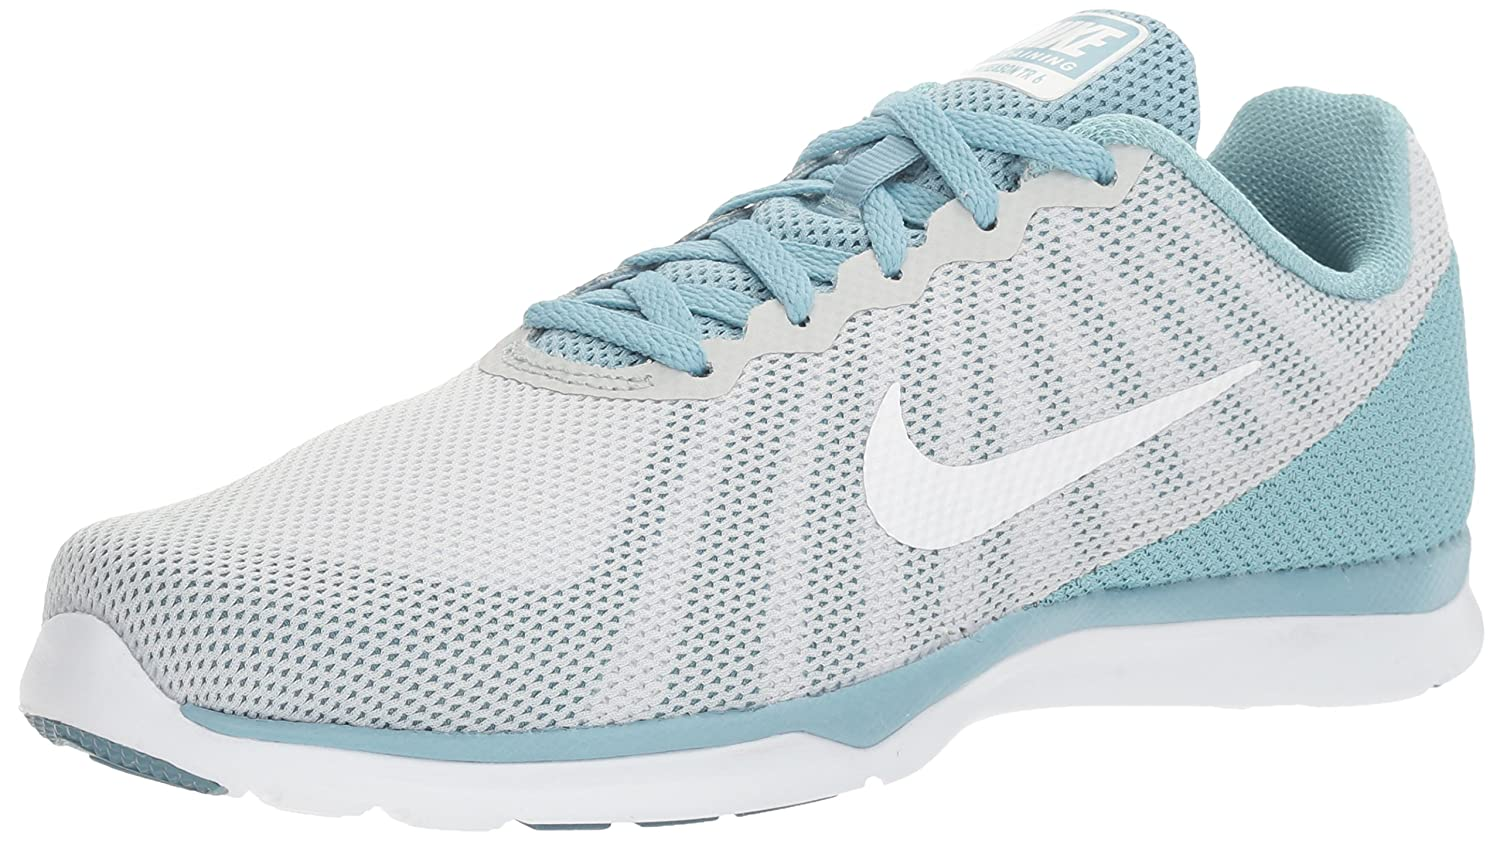 NIKE Women's in-Season TR 6 Cross Training Shoe B01FTKWYK4 10.5 B(M) US|Pure Platinum/White/Mica Blue